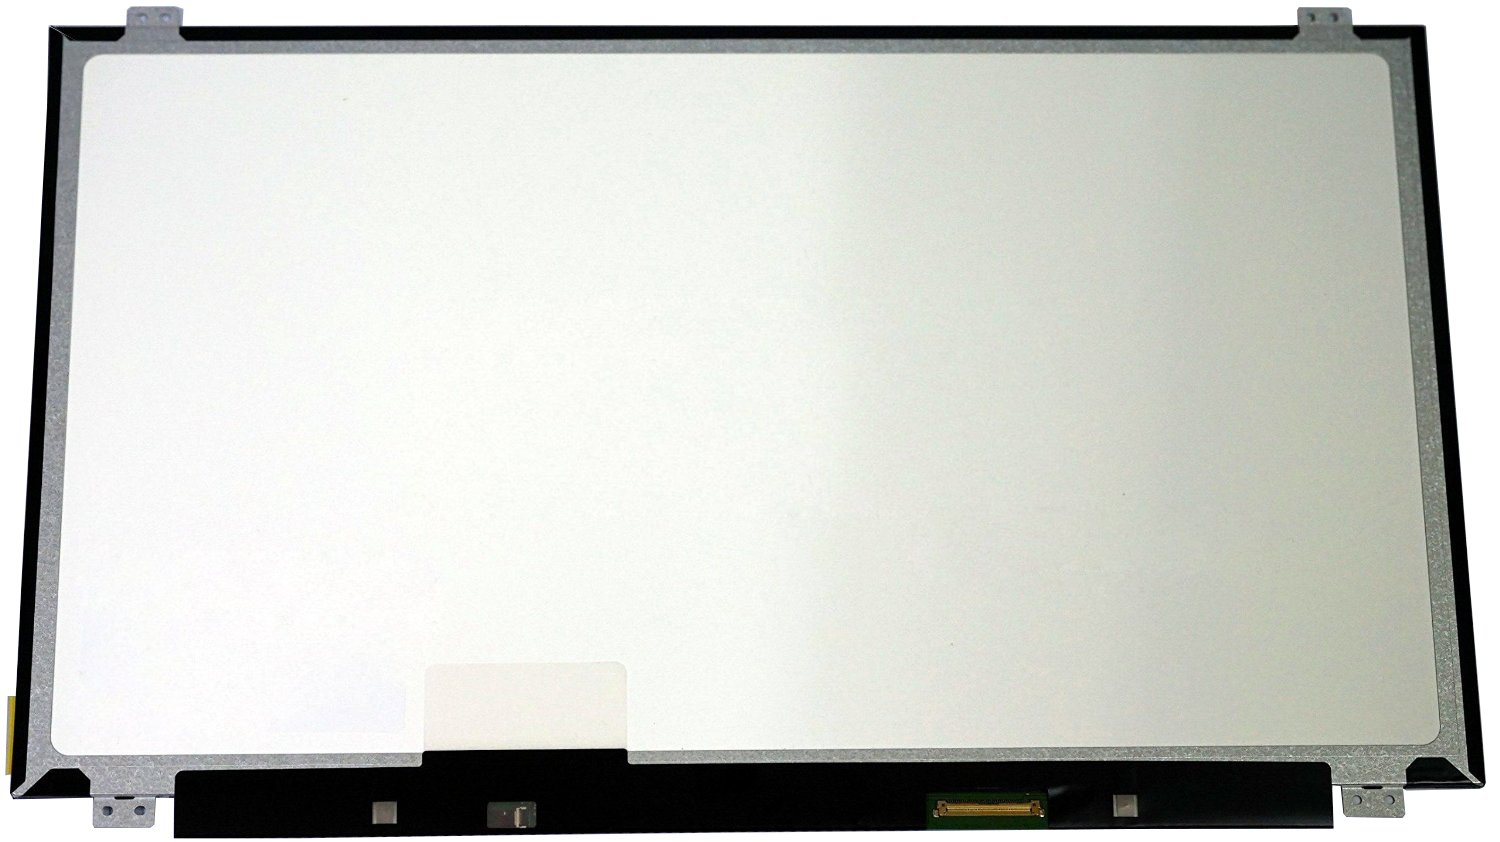 QuYing Laptop LCD Screen for Acer ASPIRE V3-574G V5-591G V5-531P V7-581P V5-572 V5-572G E5-522G SERIES (15.6 1366x768 30pin) new c5pm2 dc02002ql00 for acer vx5 591g lcd lvds cable 30pin